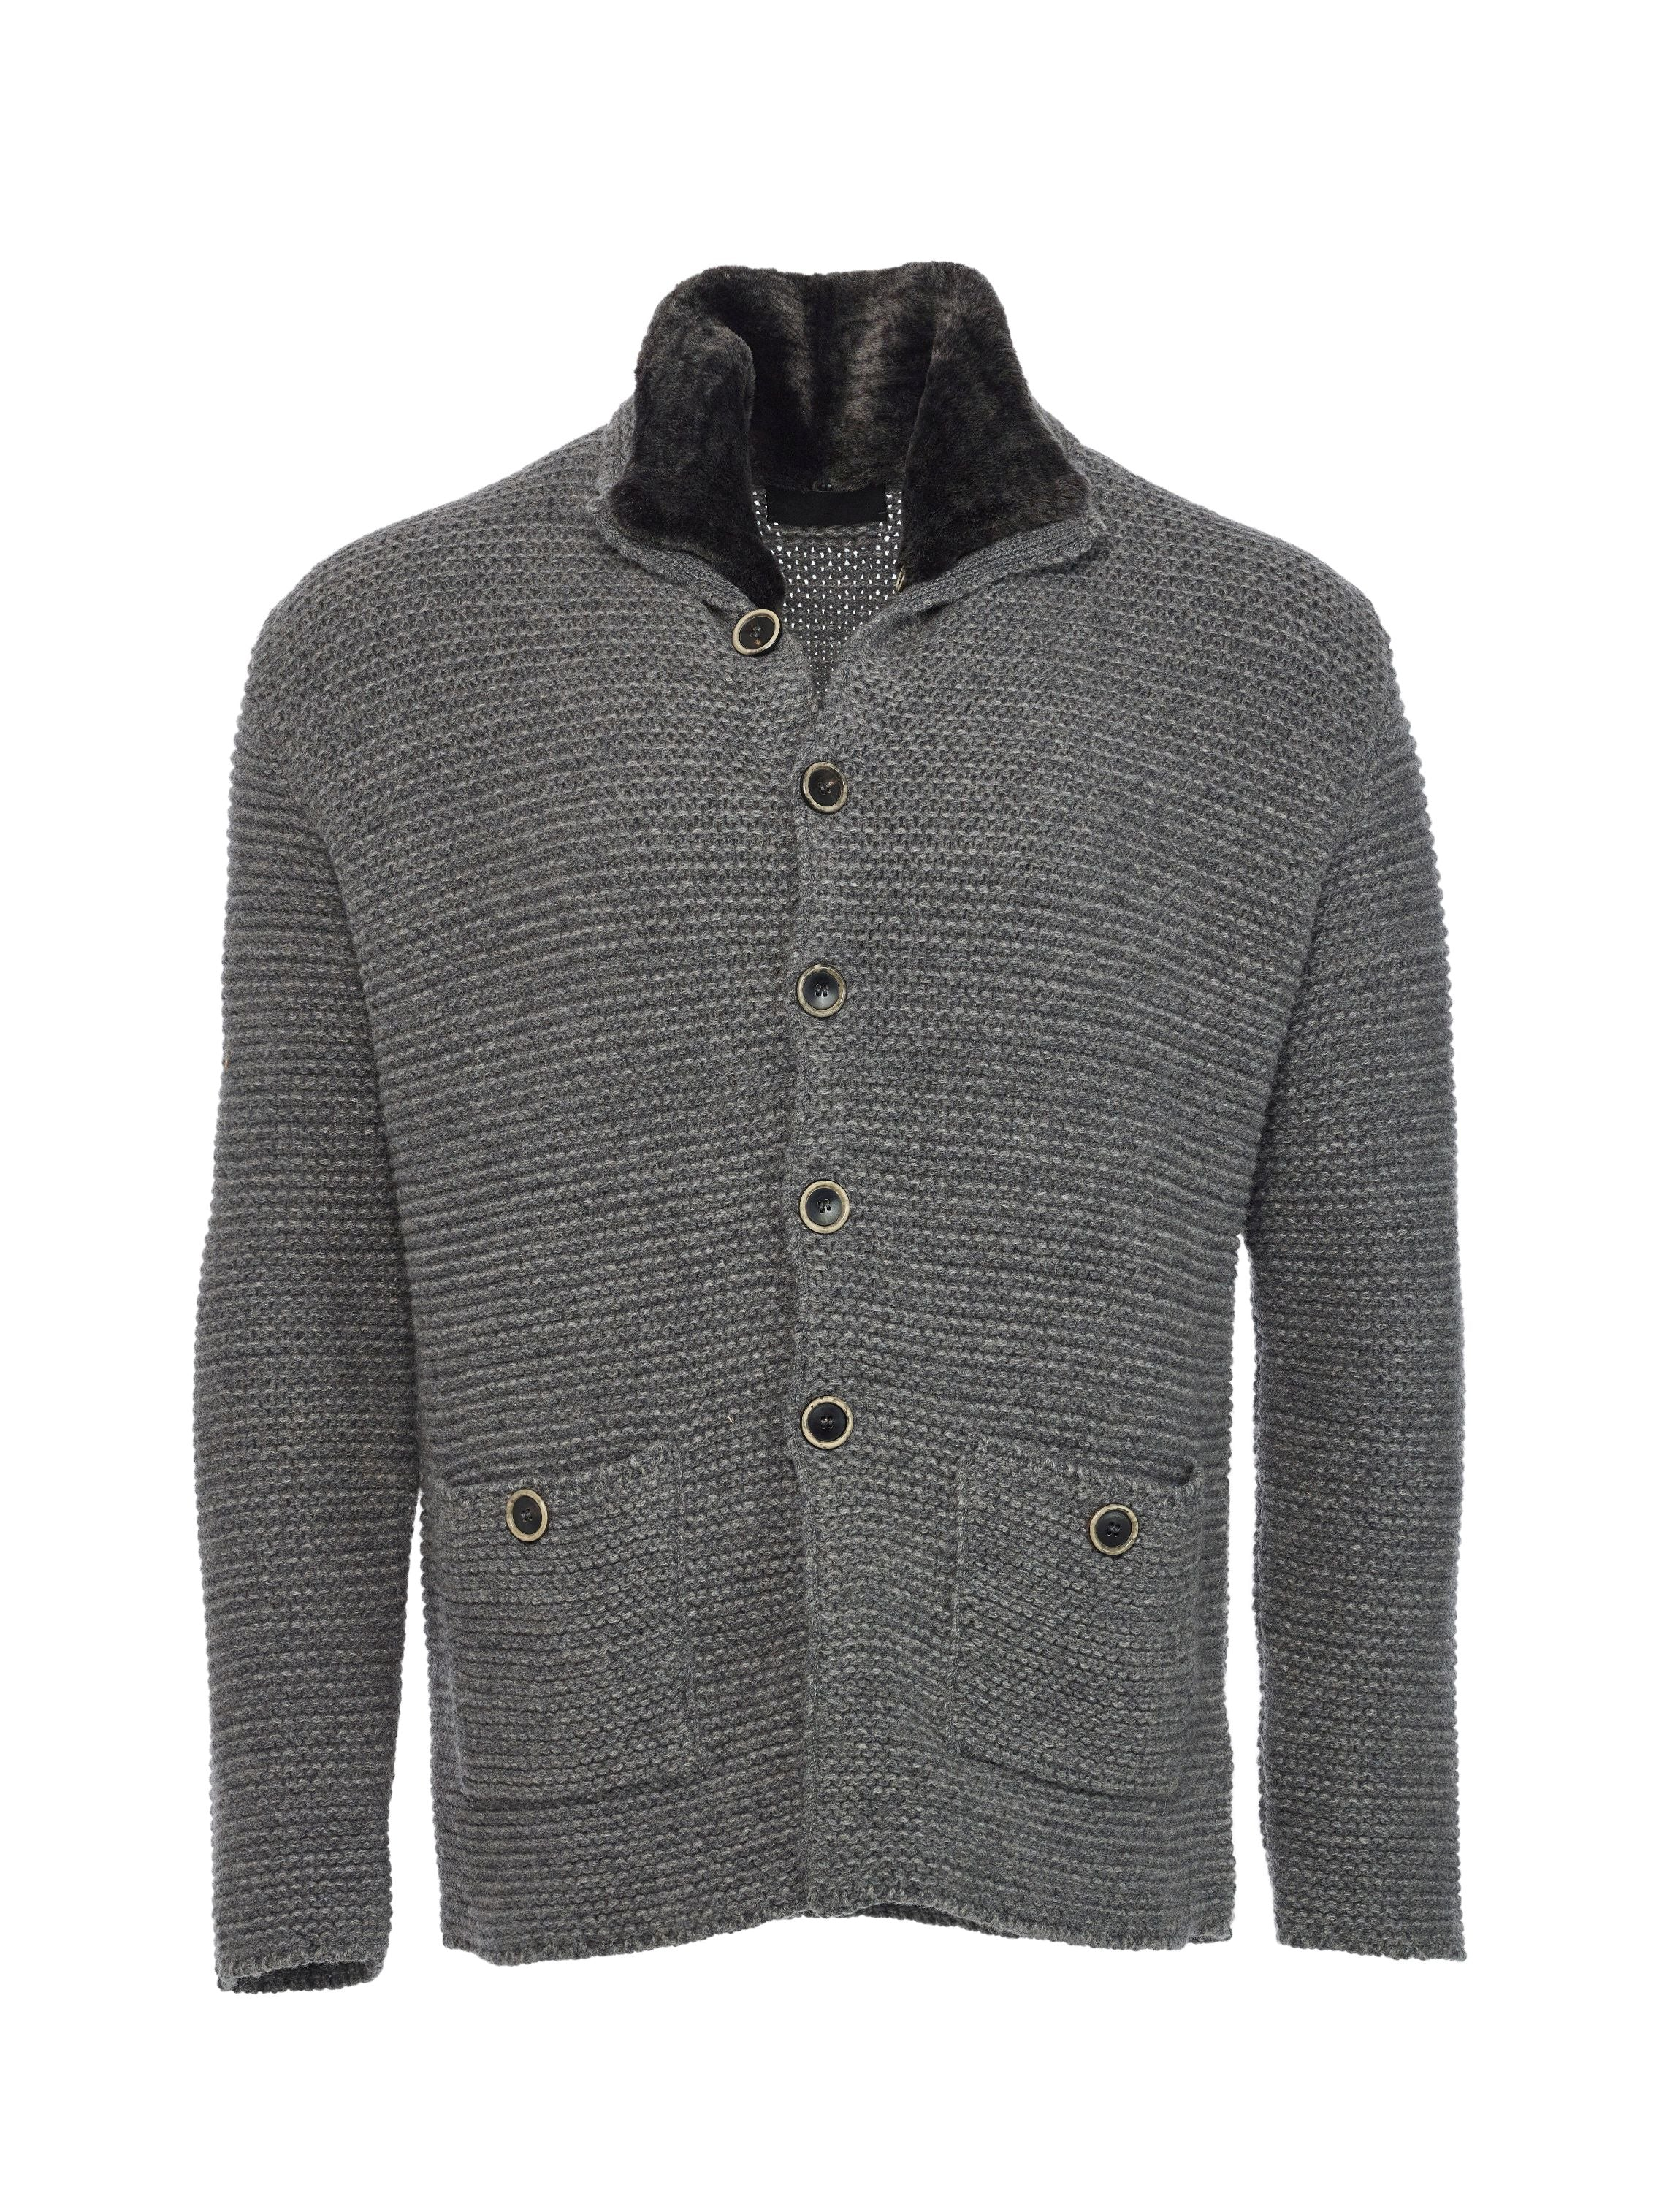 Three-gauge cashmere cardigan with detachable Spanish merino lamb collar and horn buttons